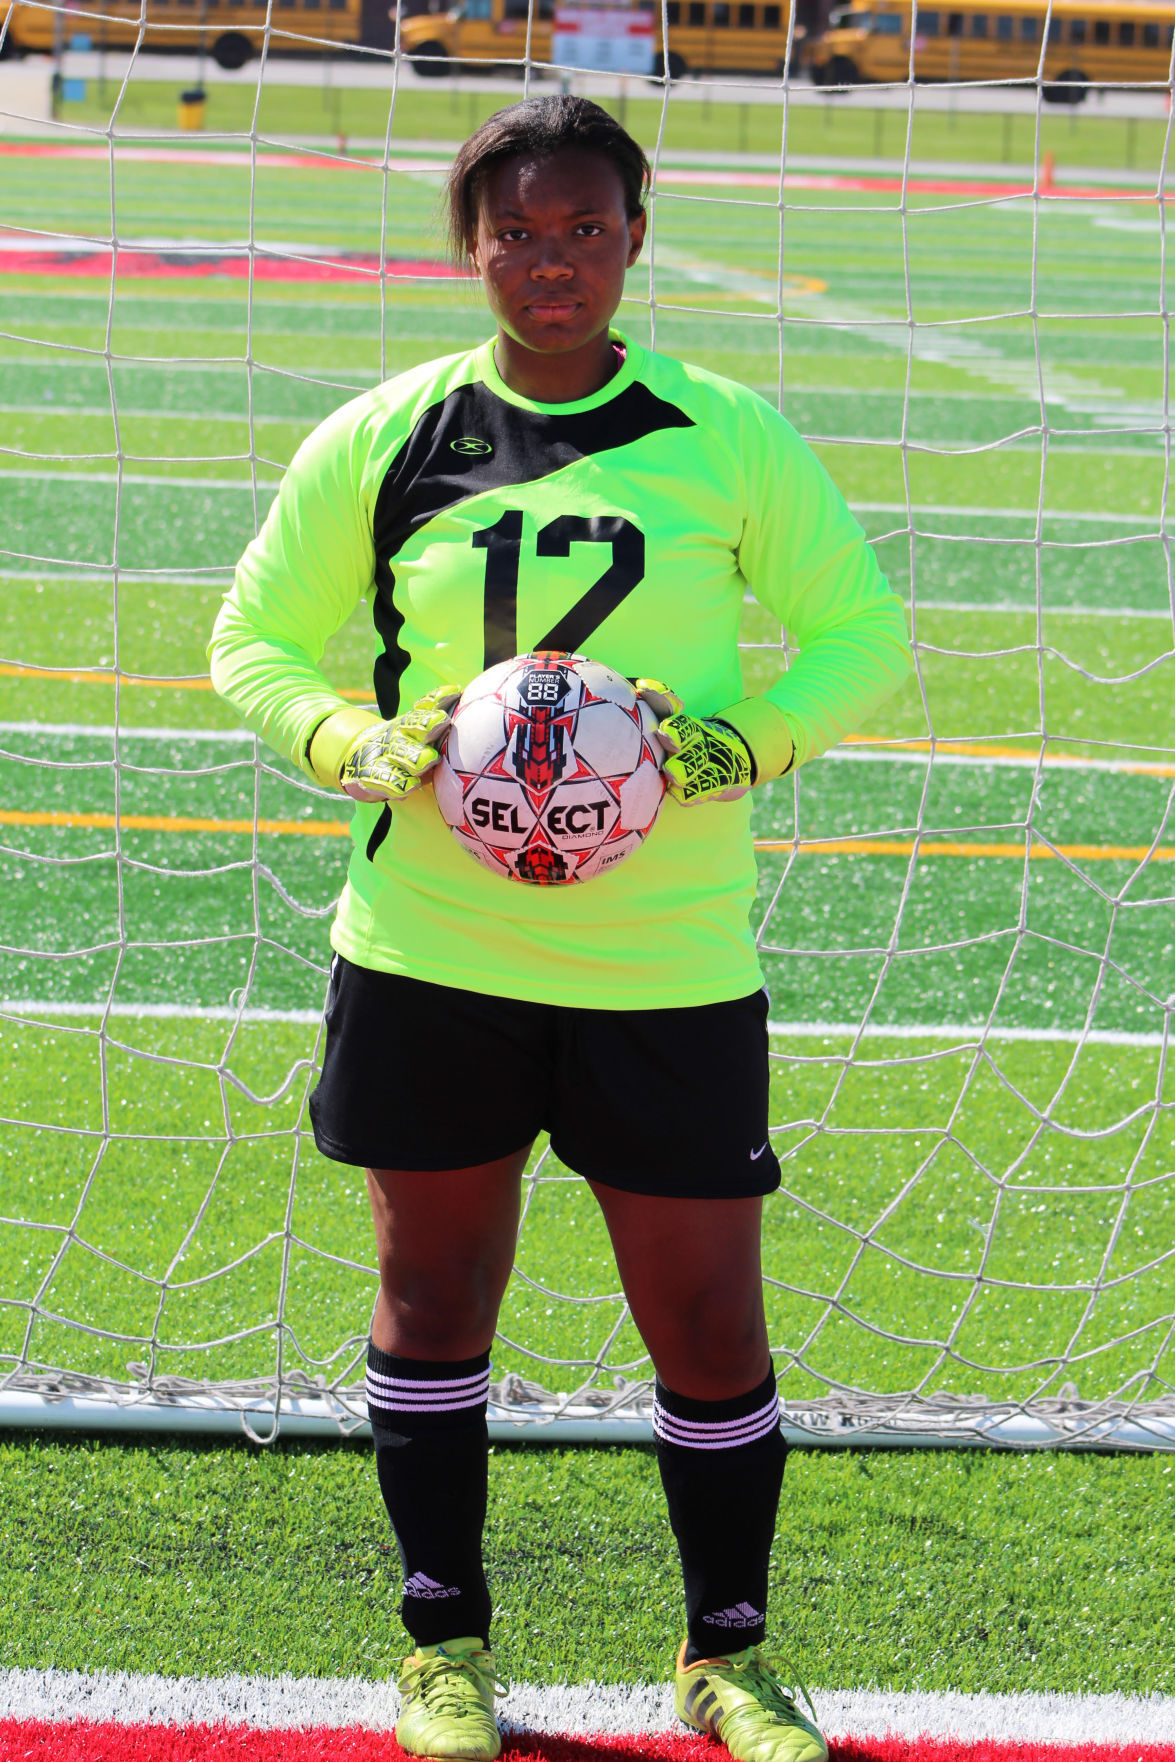 Davina Know Your Place Lyrics Great still new to soccer, portage's davina jackson is making most of